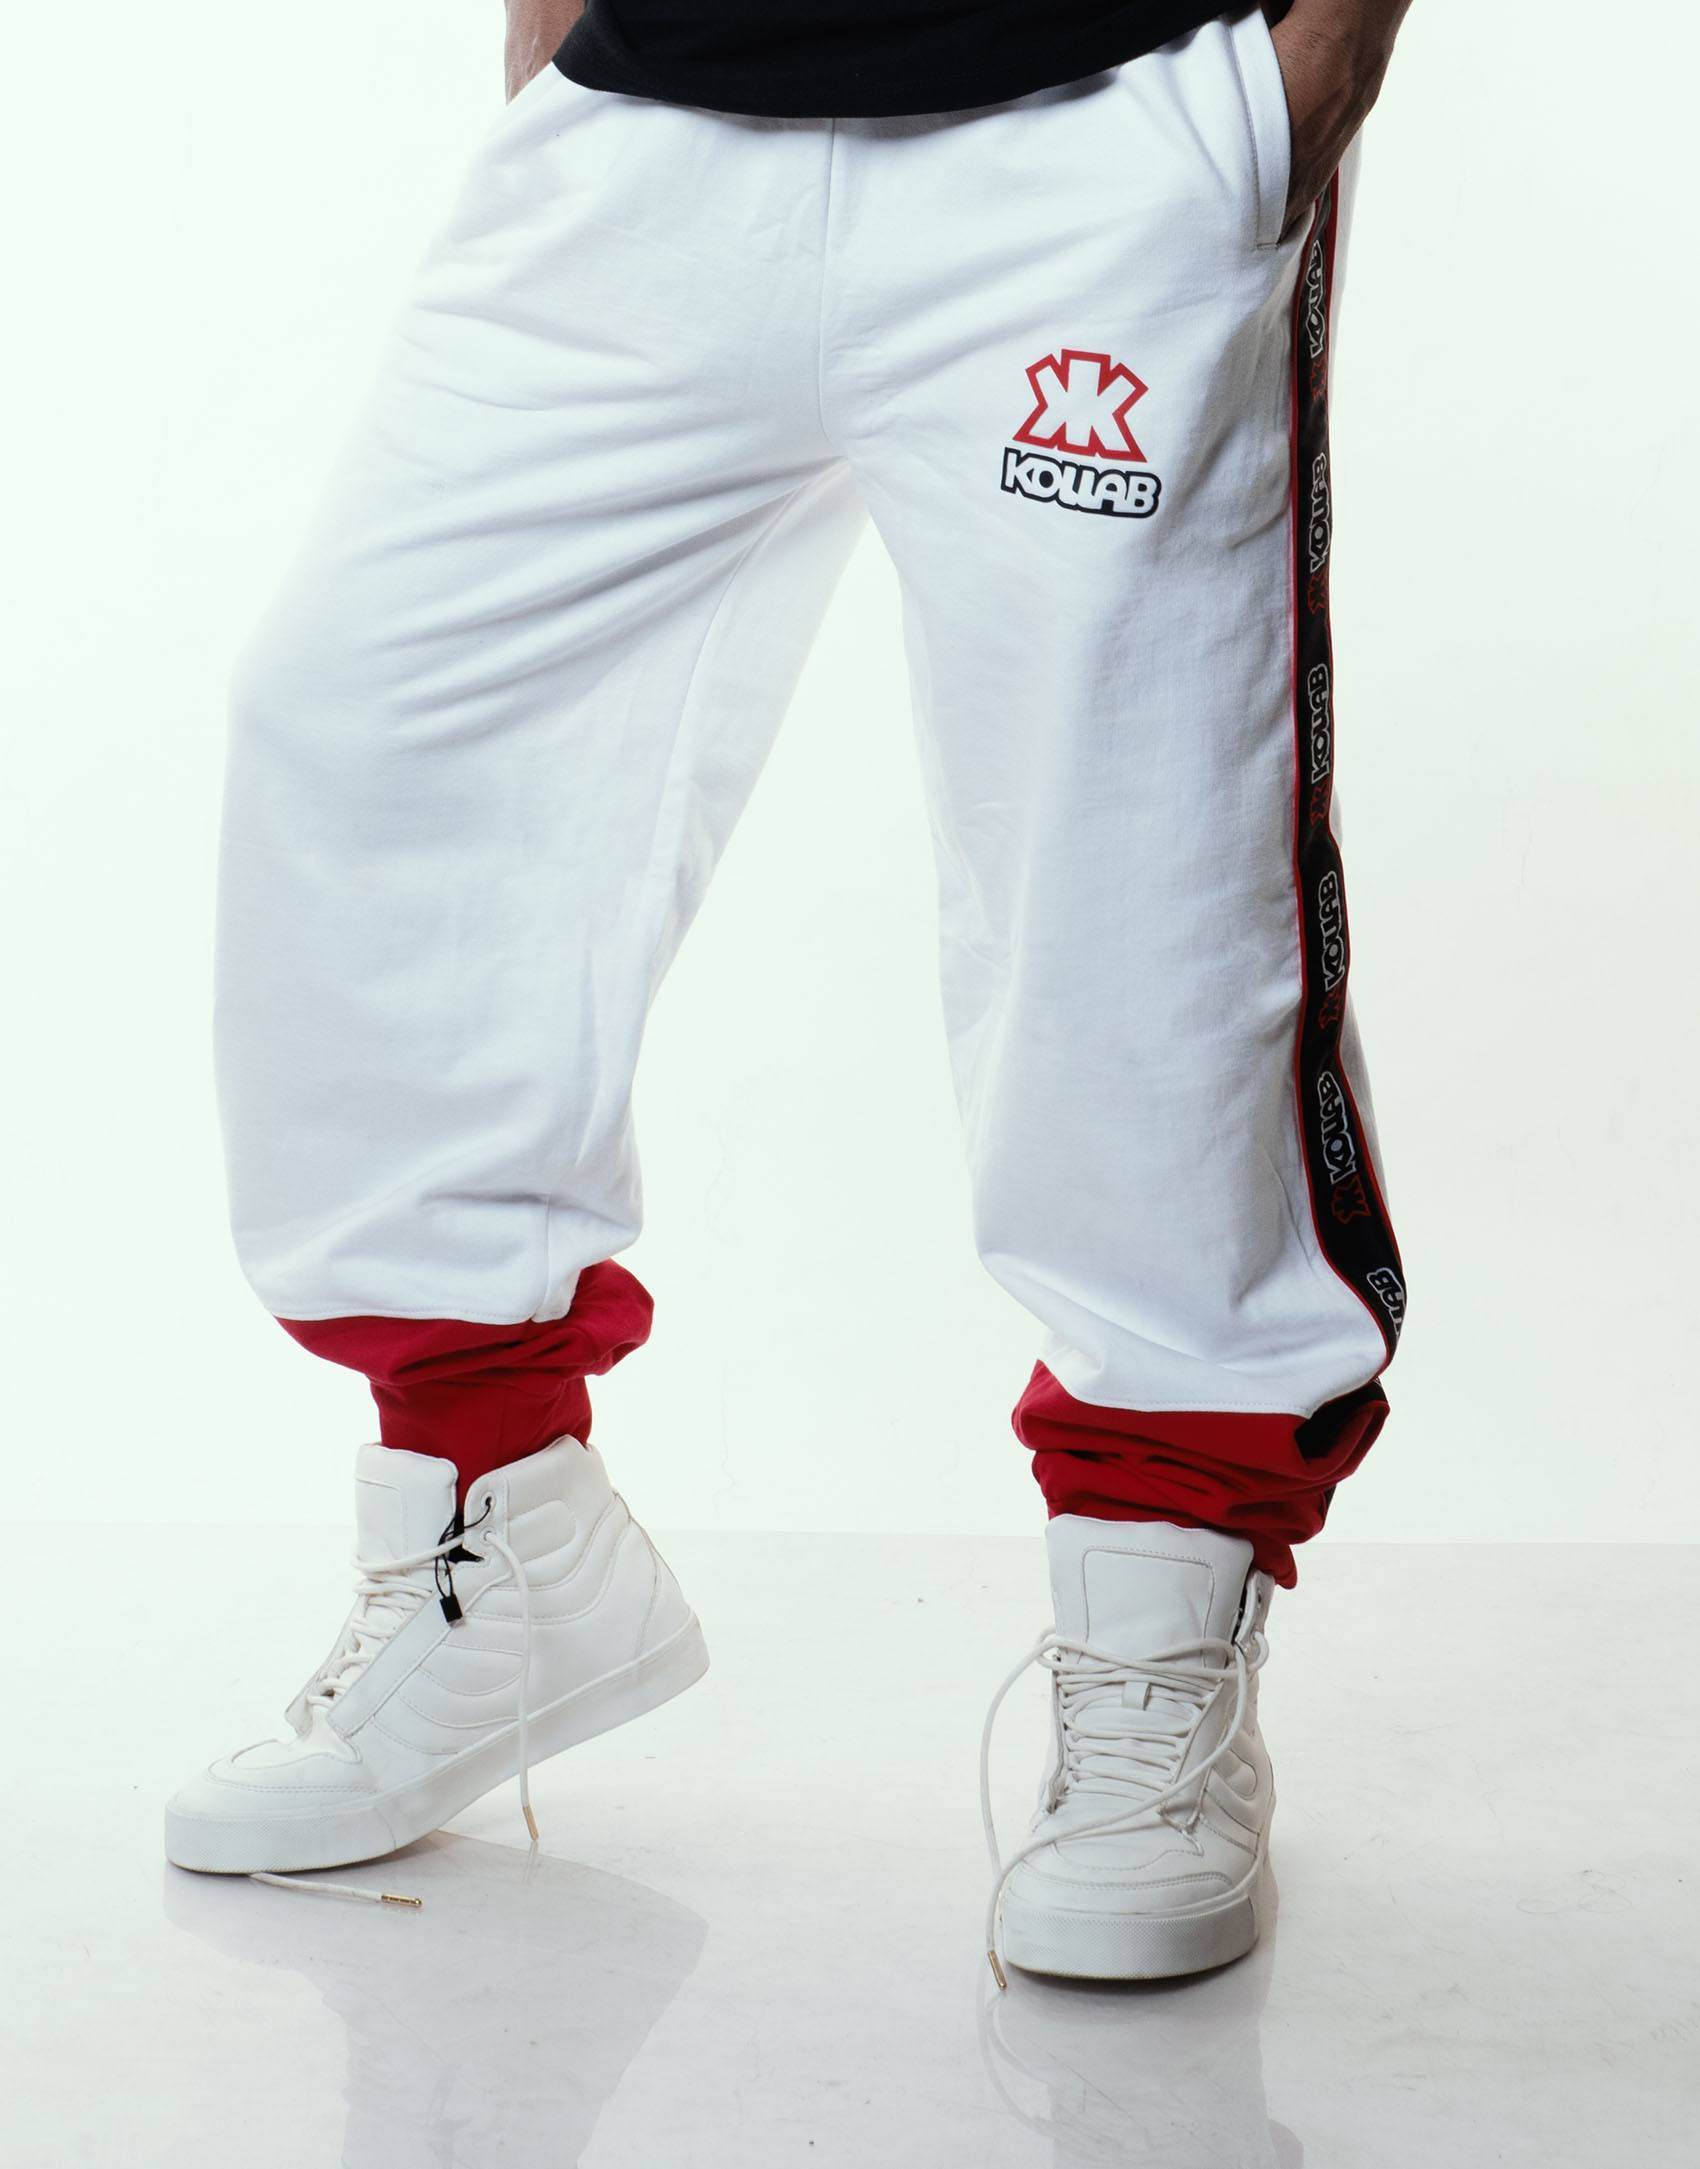 Kollab® Bi-Tone Sweatpants - White-Red | Kollab Lifestyle